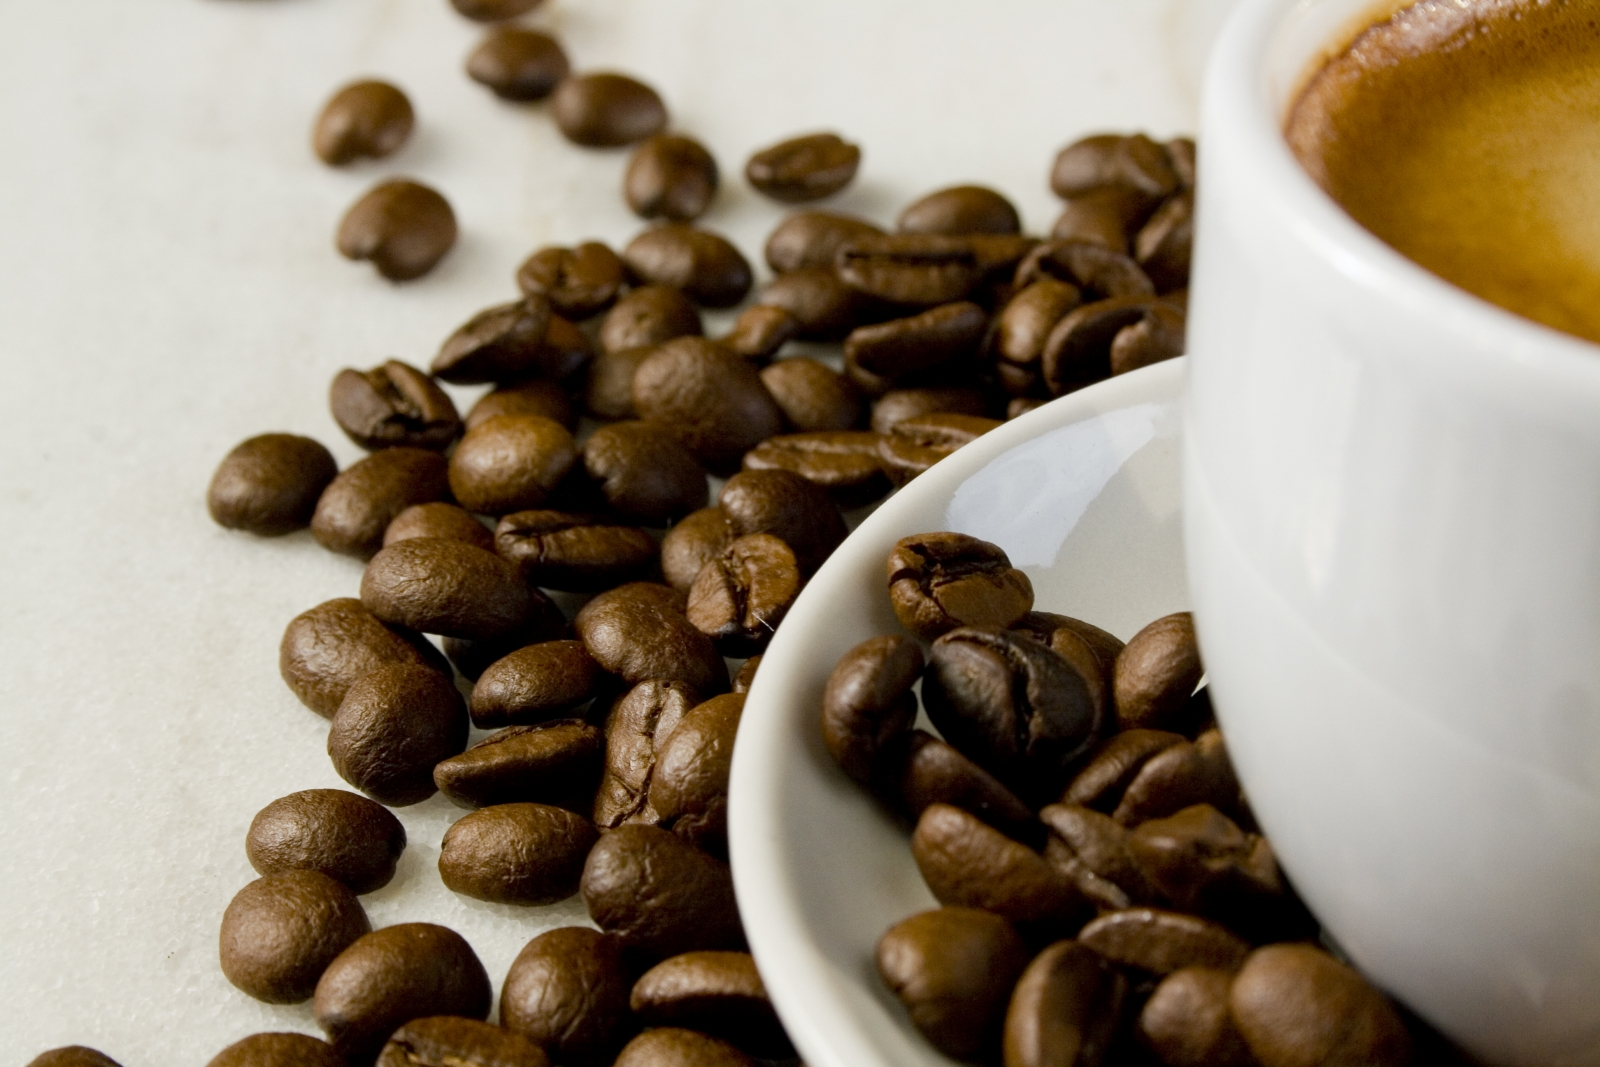 Three cups of coffee a day may extend lifespan